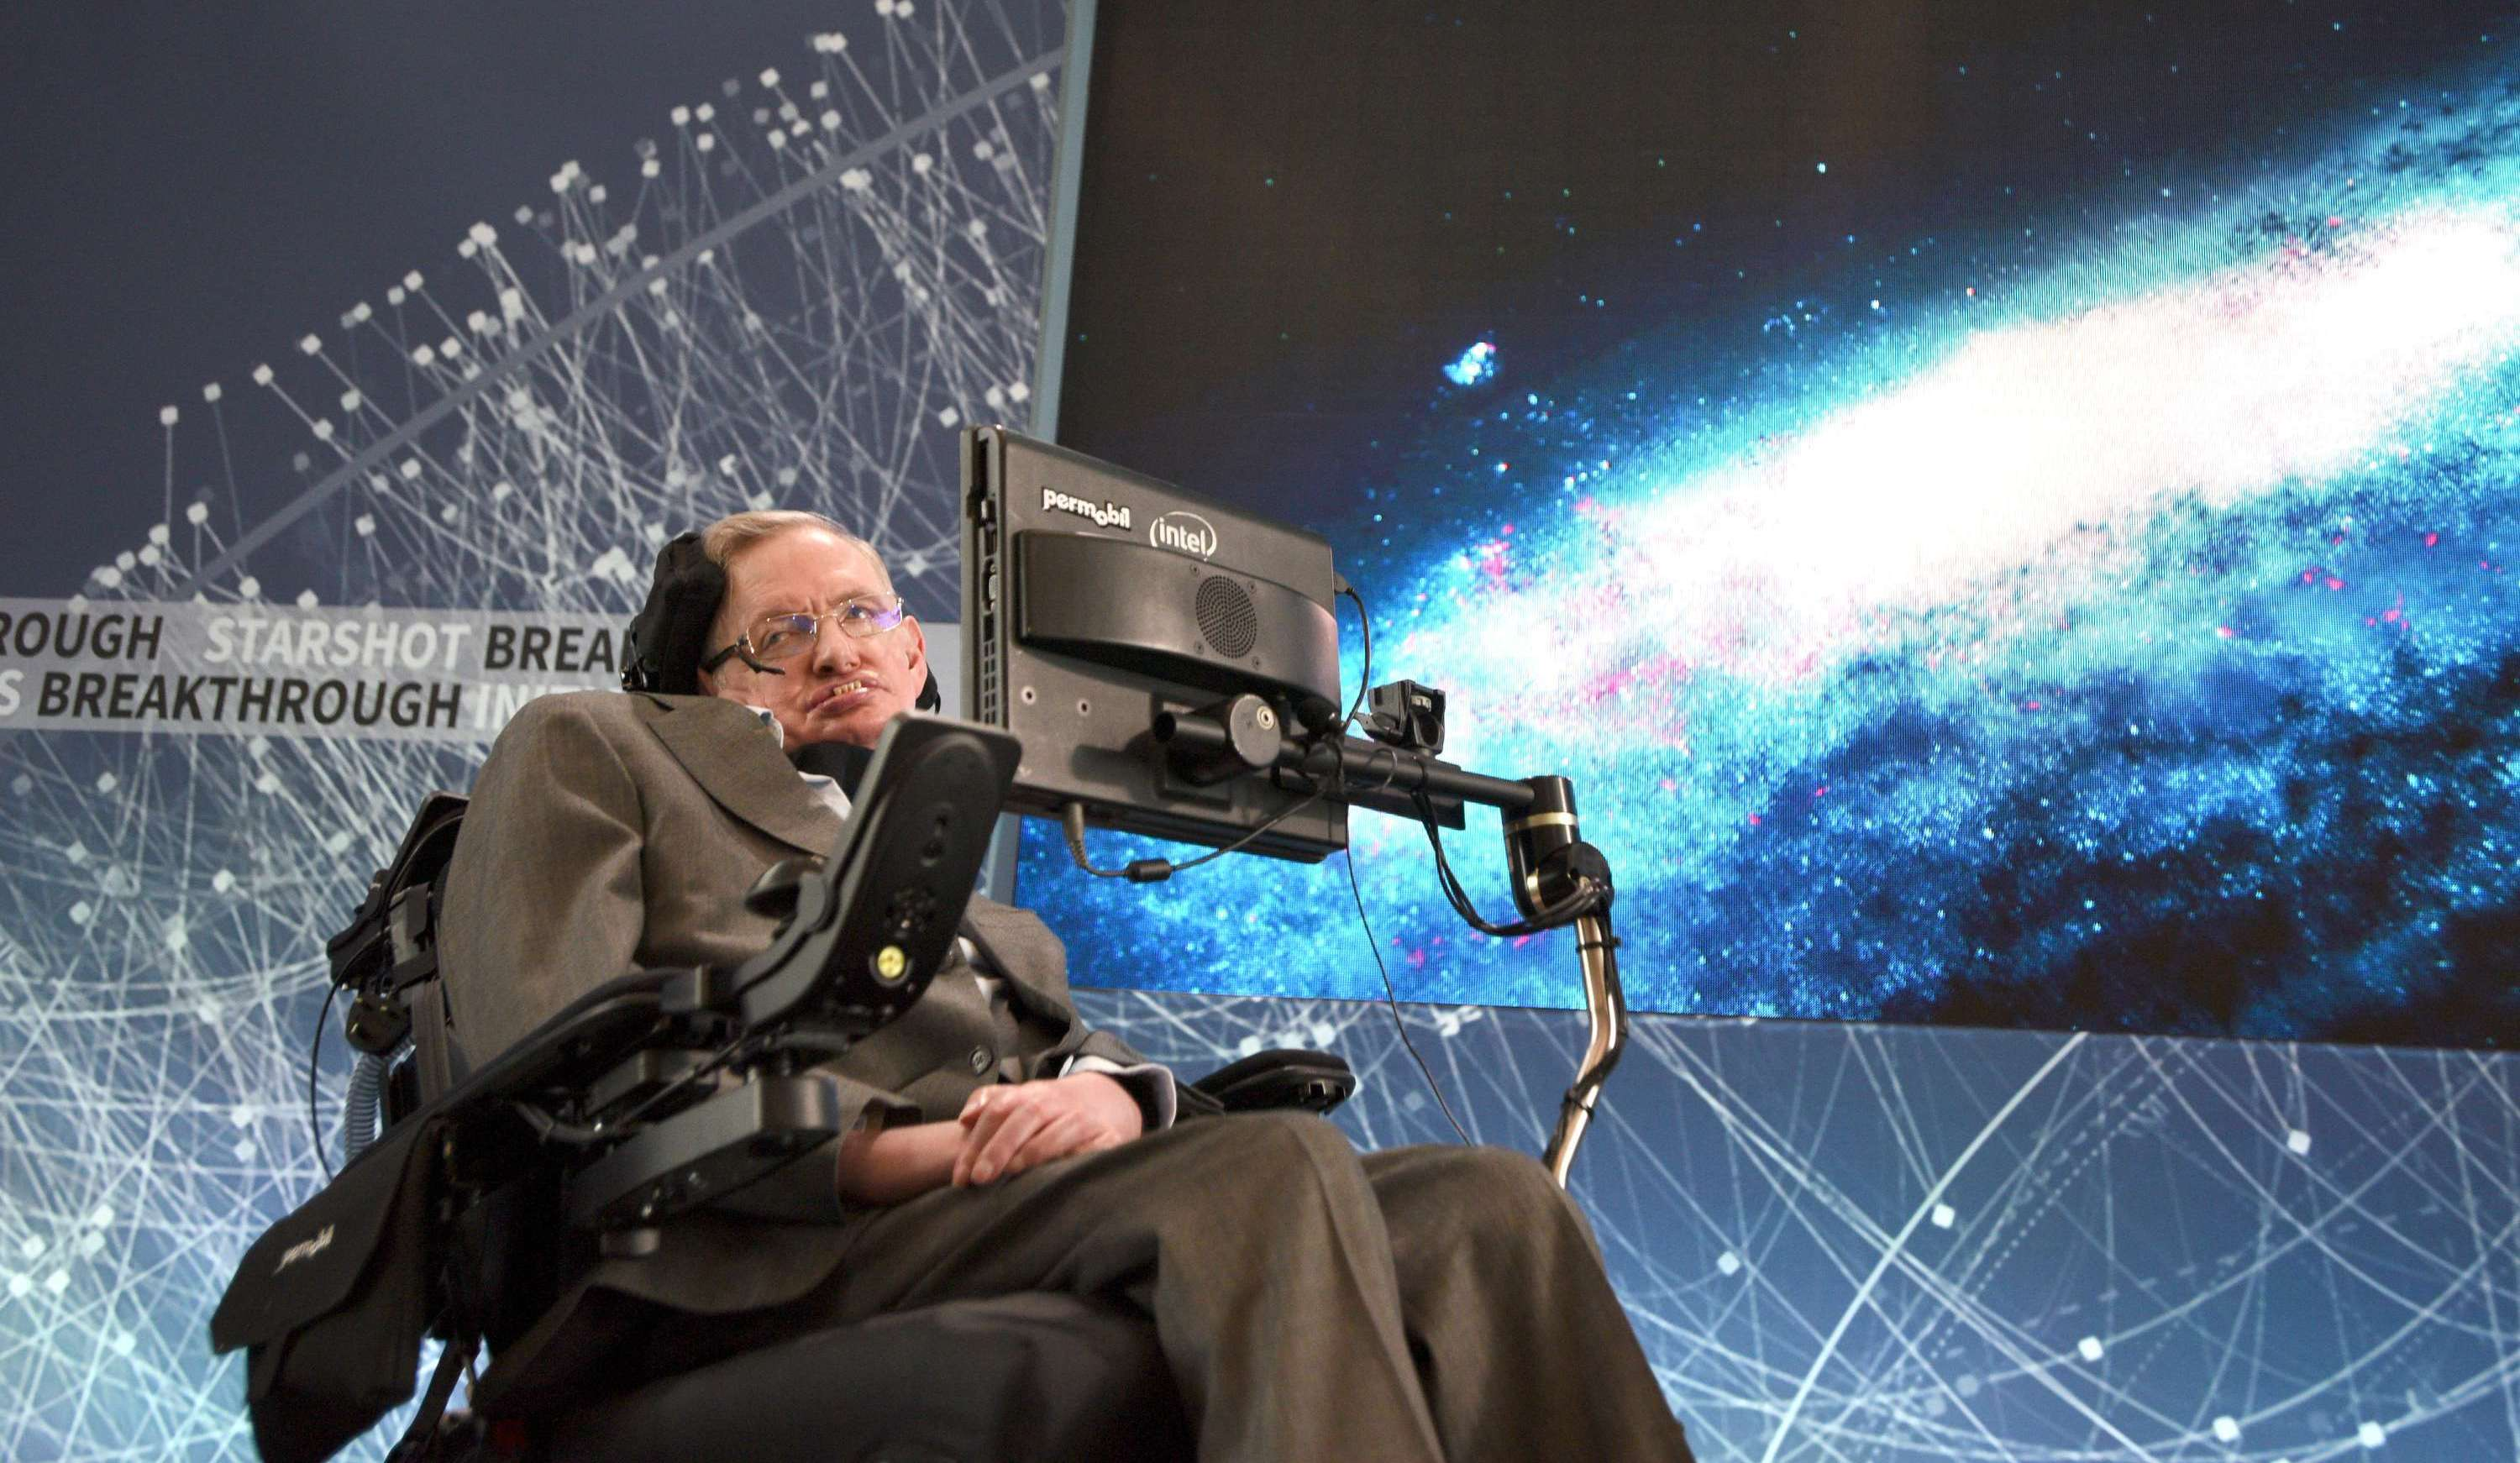 Stephen Hawking's Plan For Interstellar Travel Has Some Earthly Obstacles